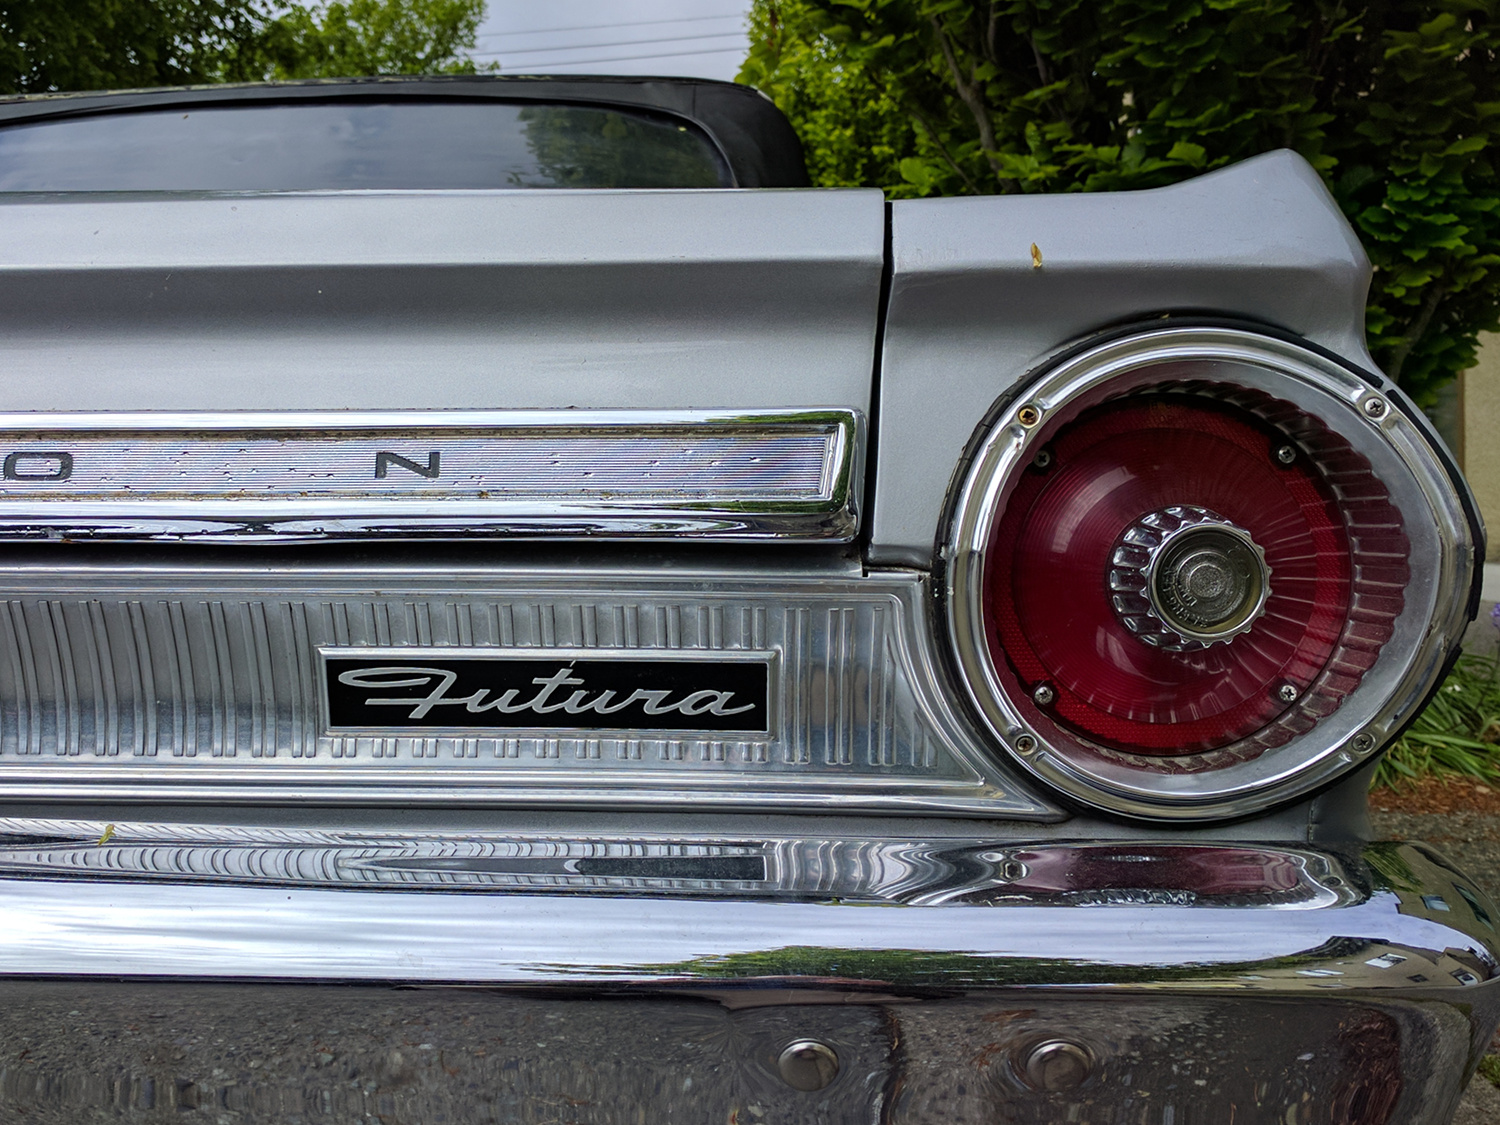 Old Parked Cars Vancouver 1964 Ford Falcon Futura 1